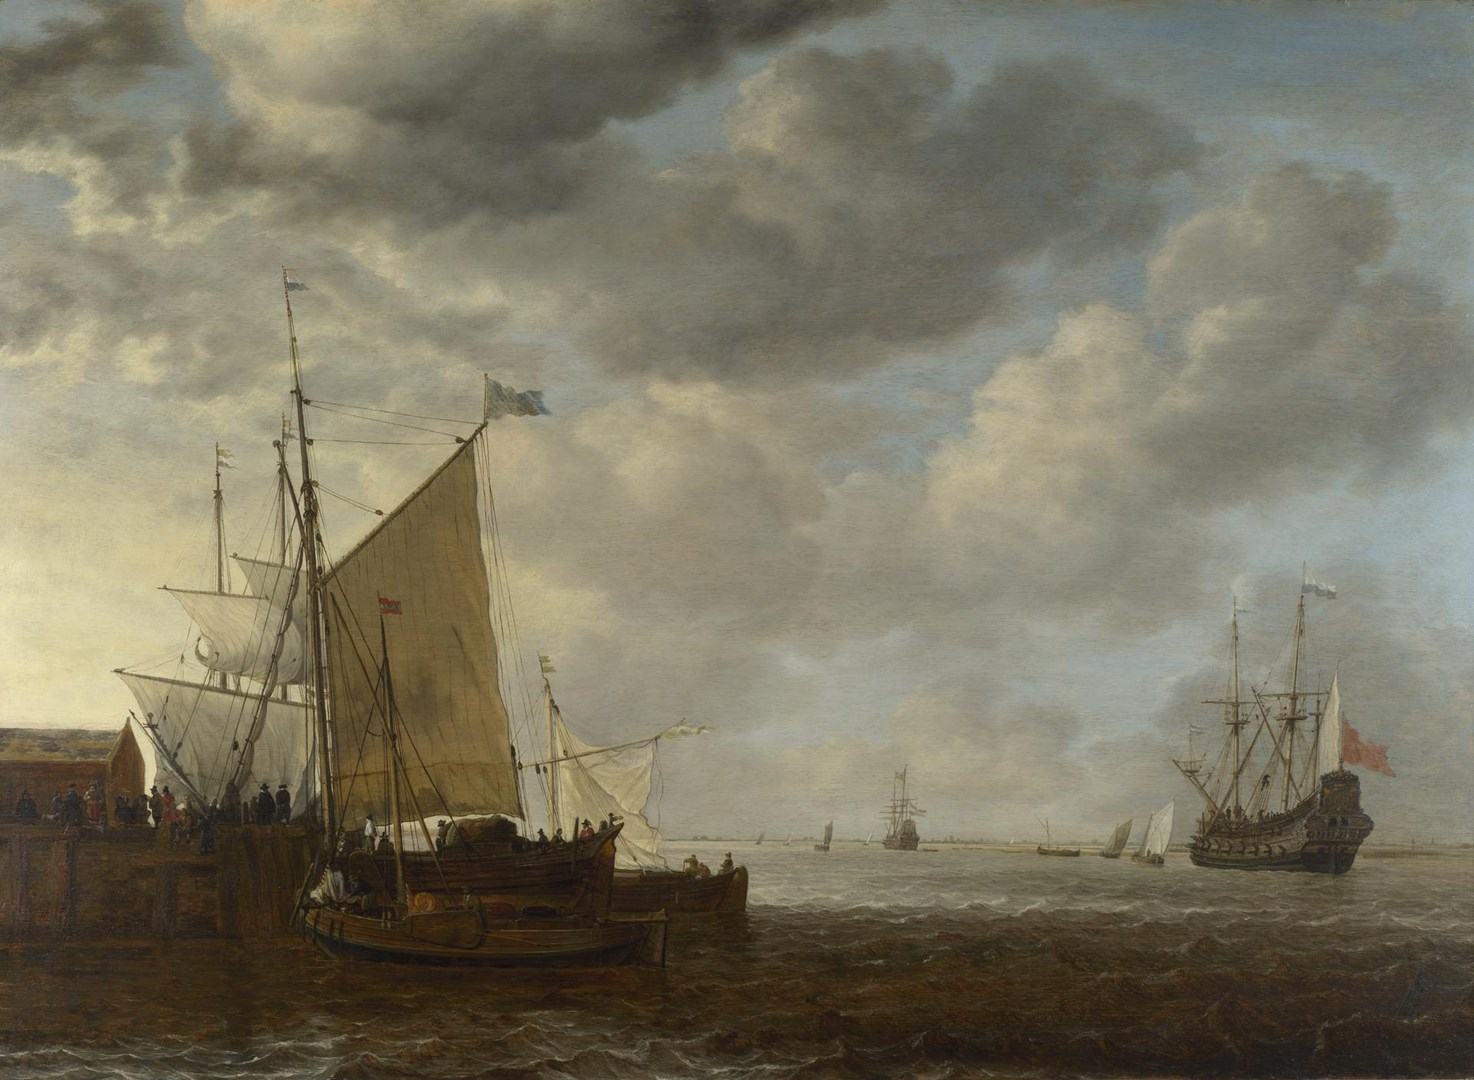 A View of an Estuary by Simon de Vlieger